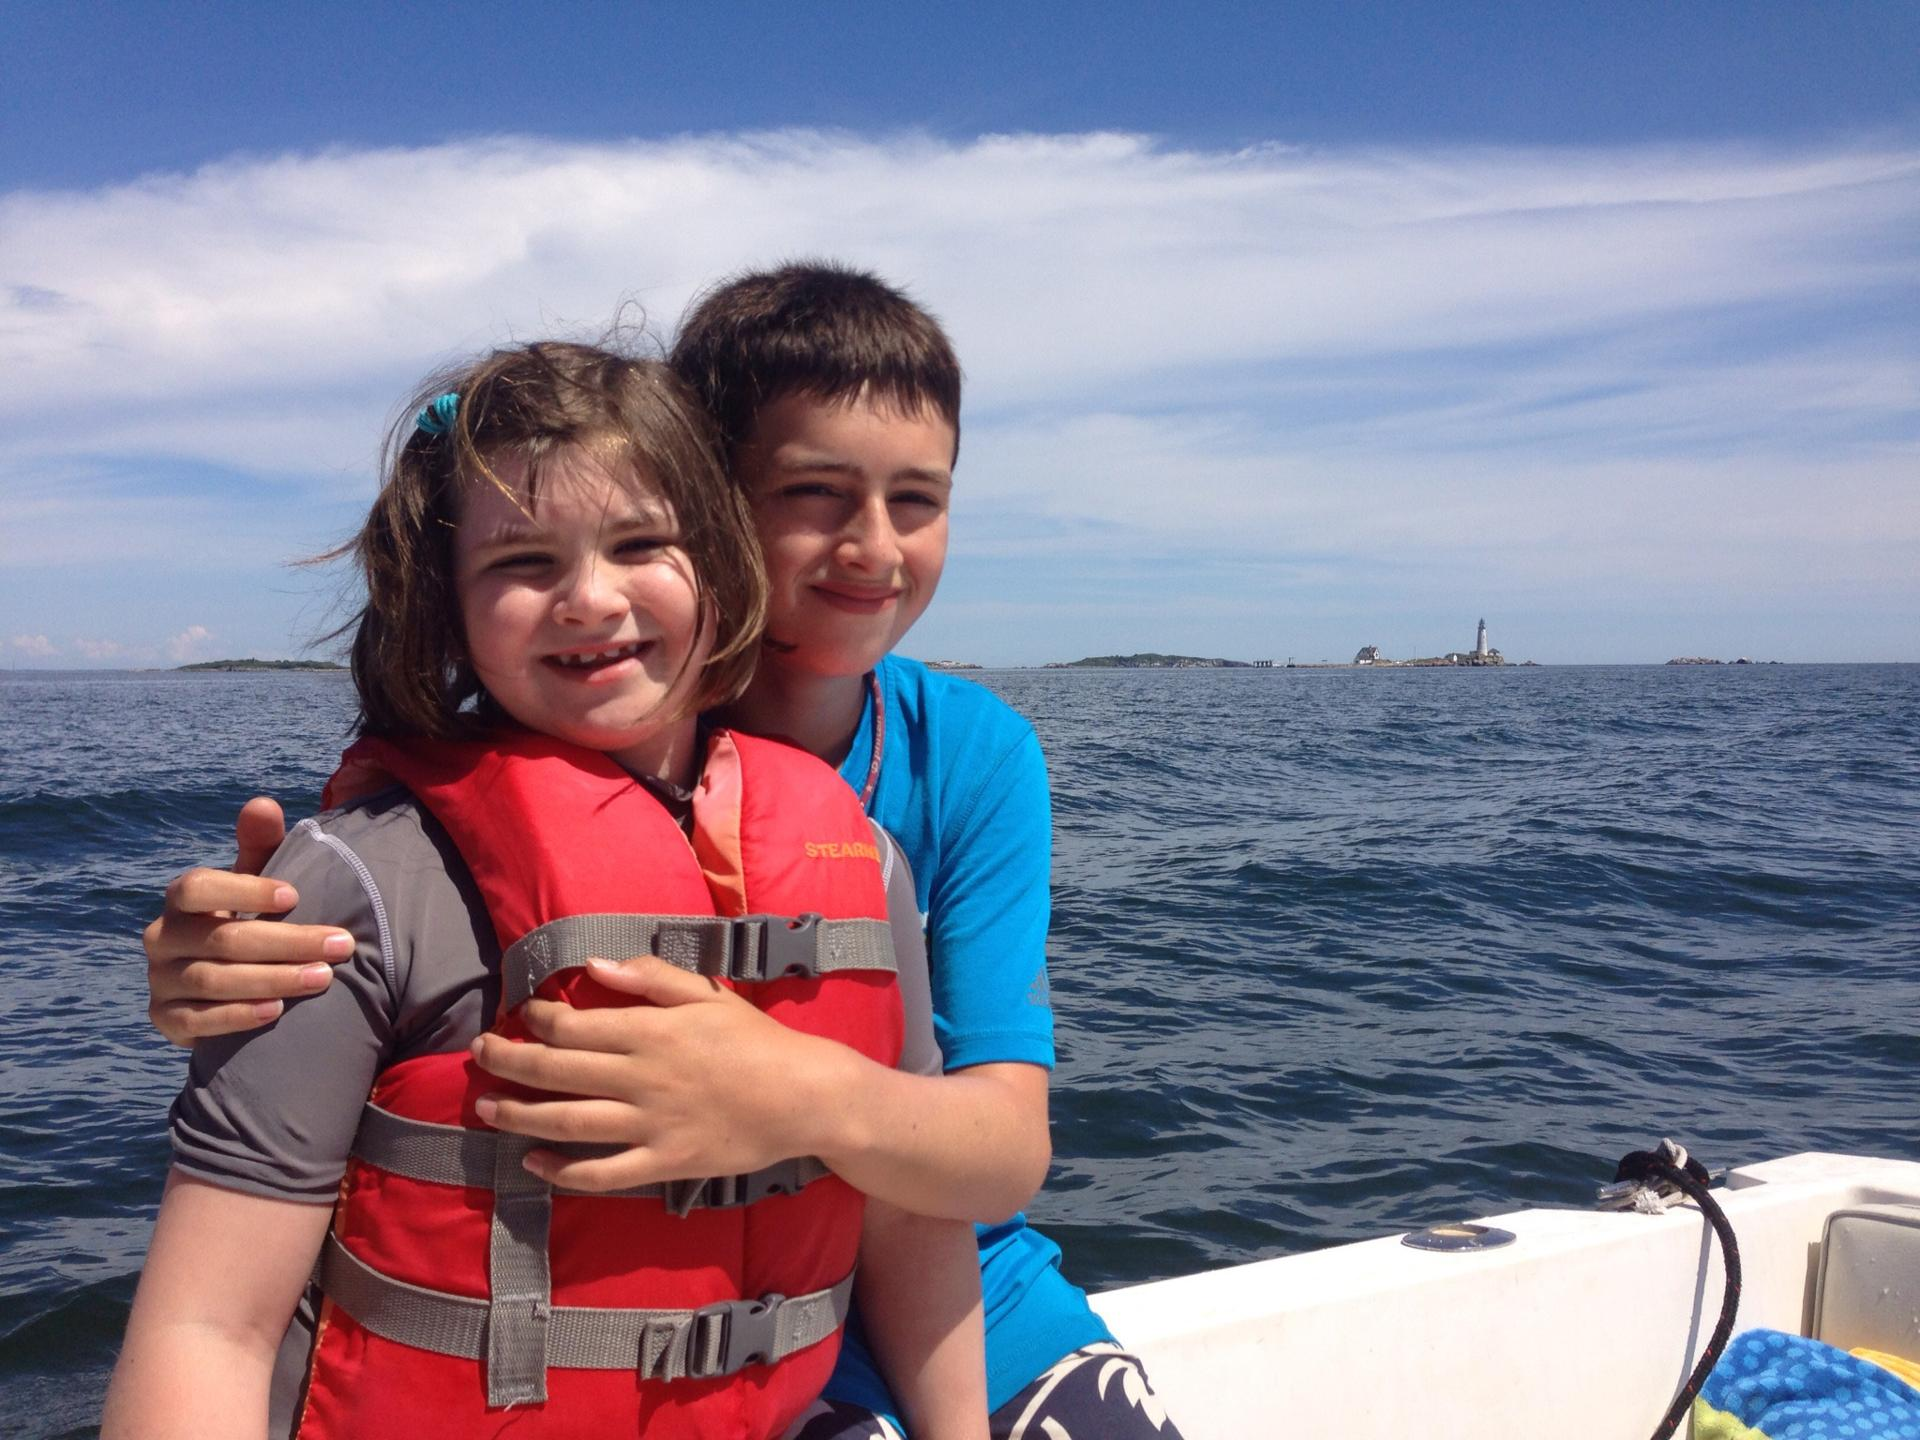 Inspired by the boats they saw from Spaulding Rehabilitation Hospital, the family took up sailing.